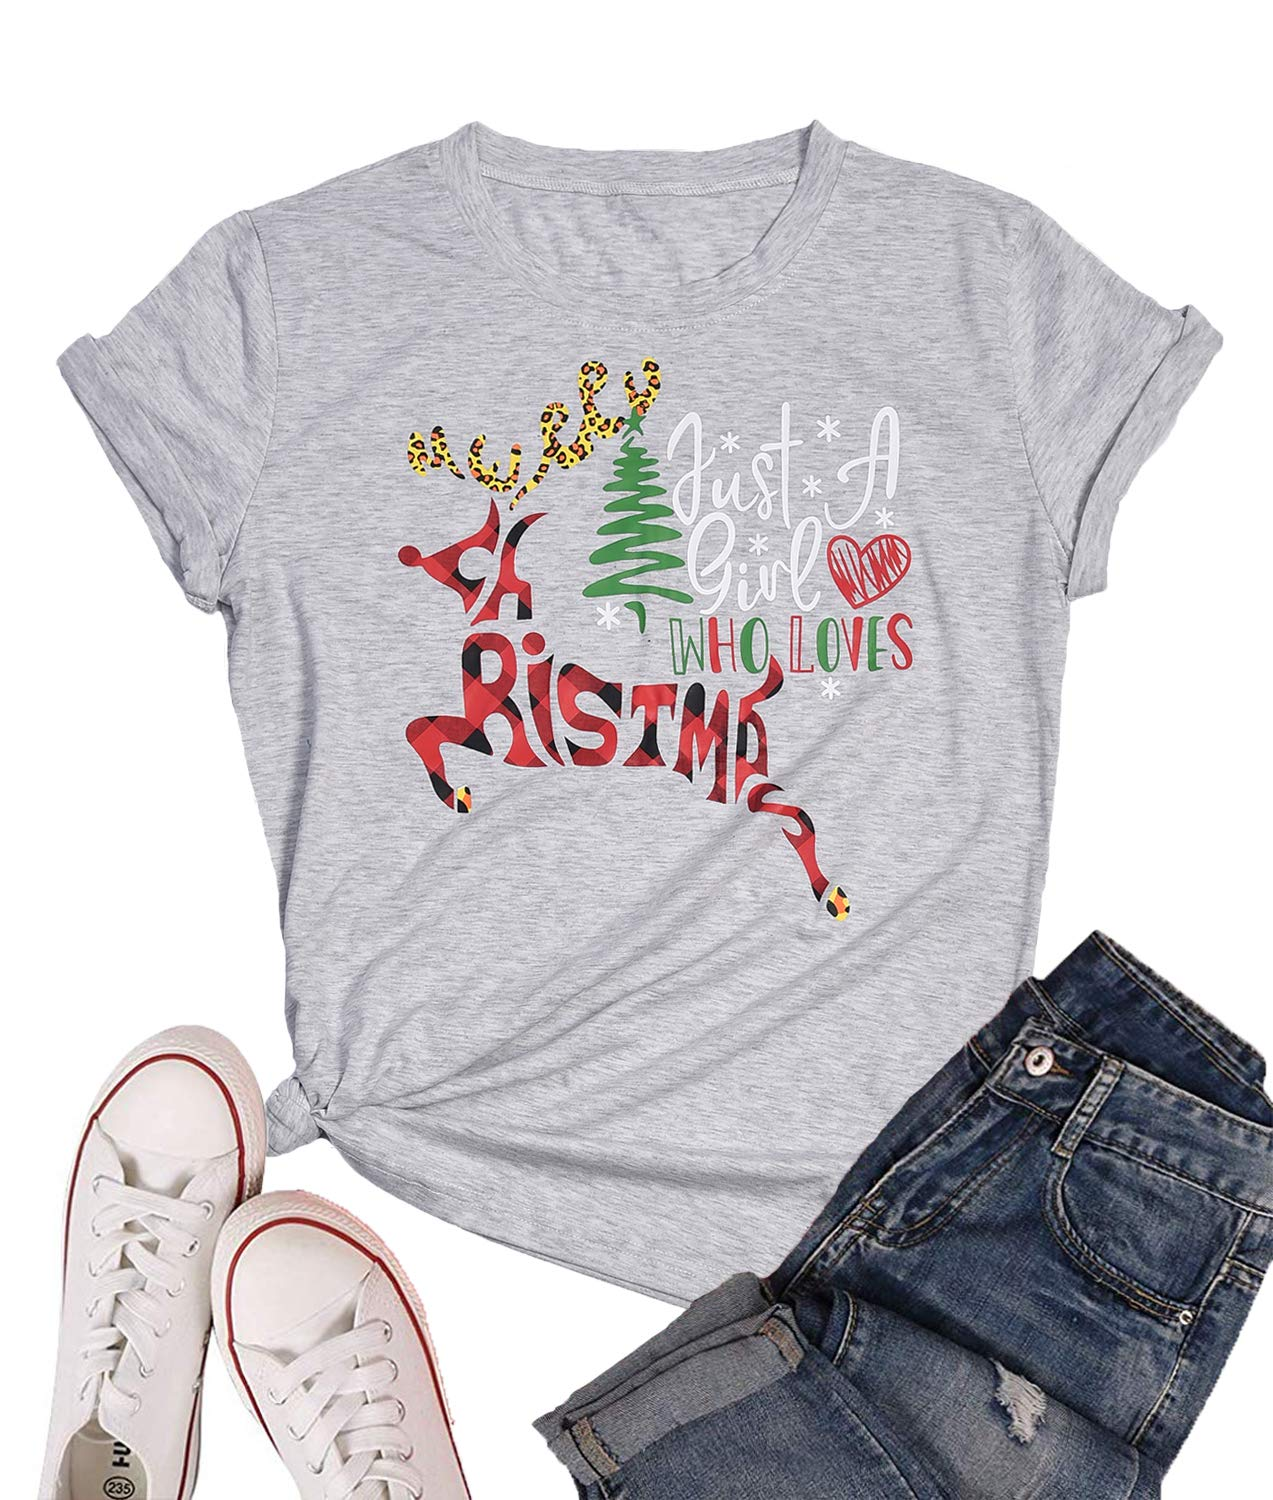 Eanklosco Merry Christmas T-Shirt Women's Casual Letter Tops Short Sleeve Shirts(Grey,2XL)